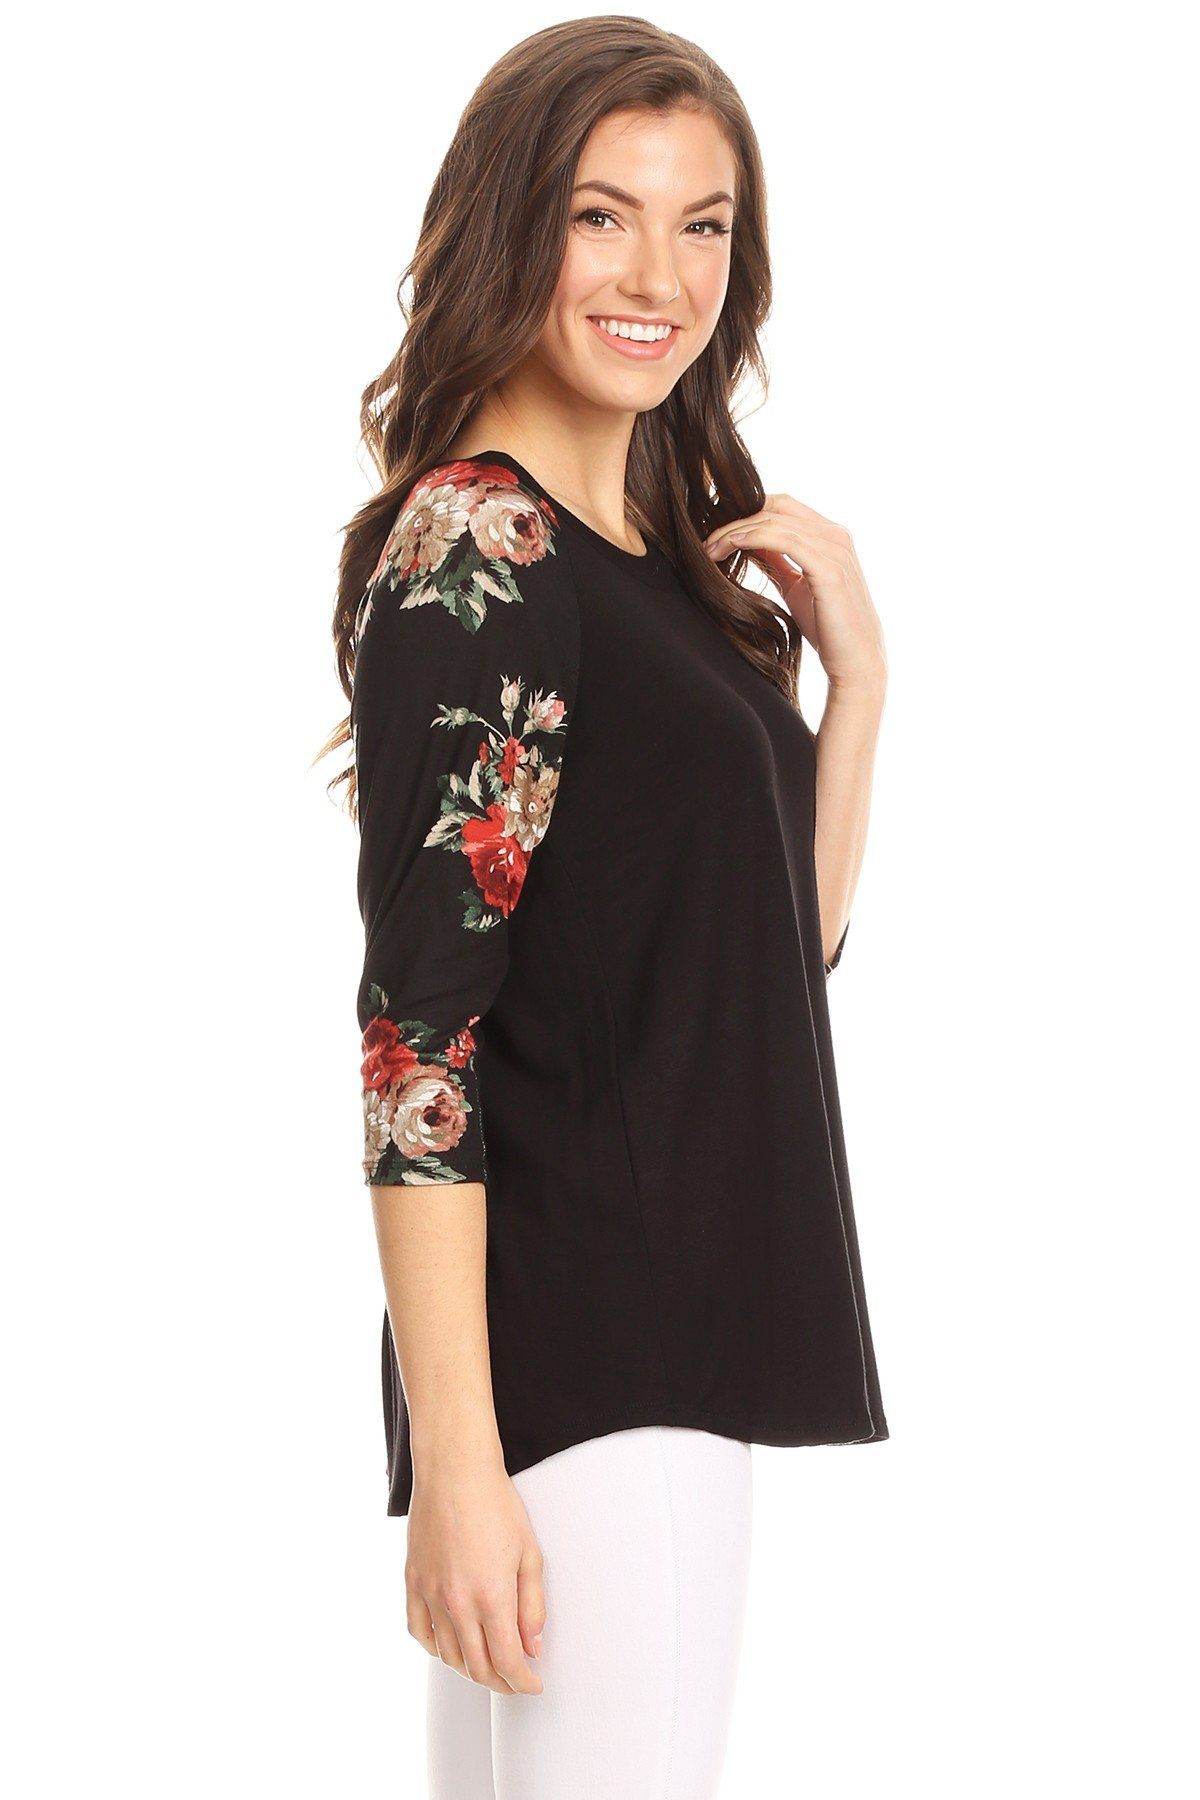 Women's Floral Top 3/4 Sleeve Black Shirt: S/M/L Tunics MomMe and More